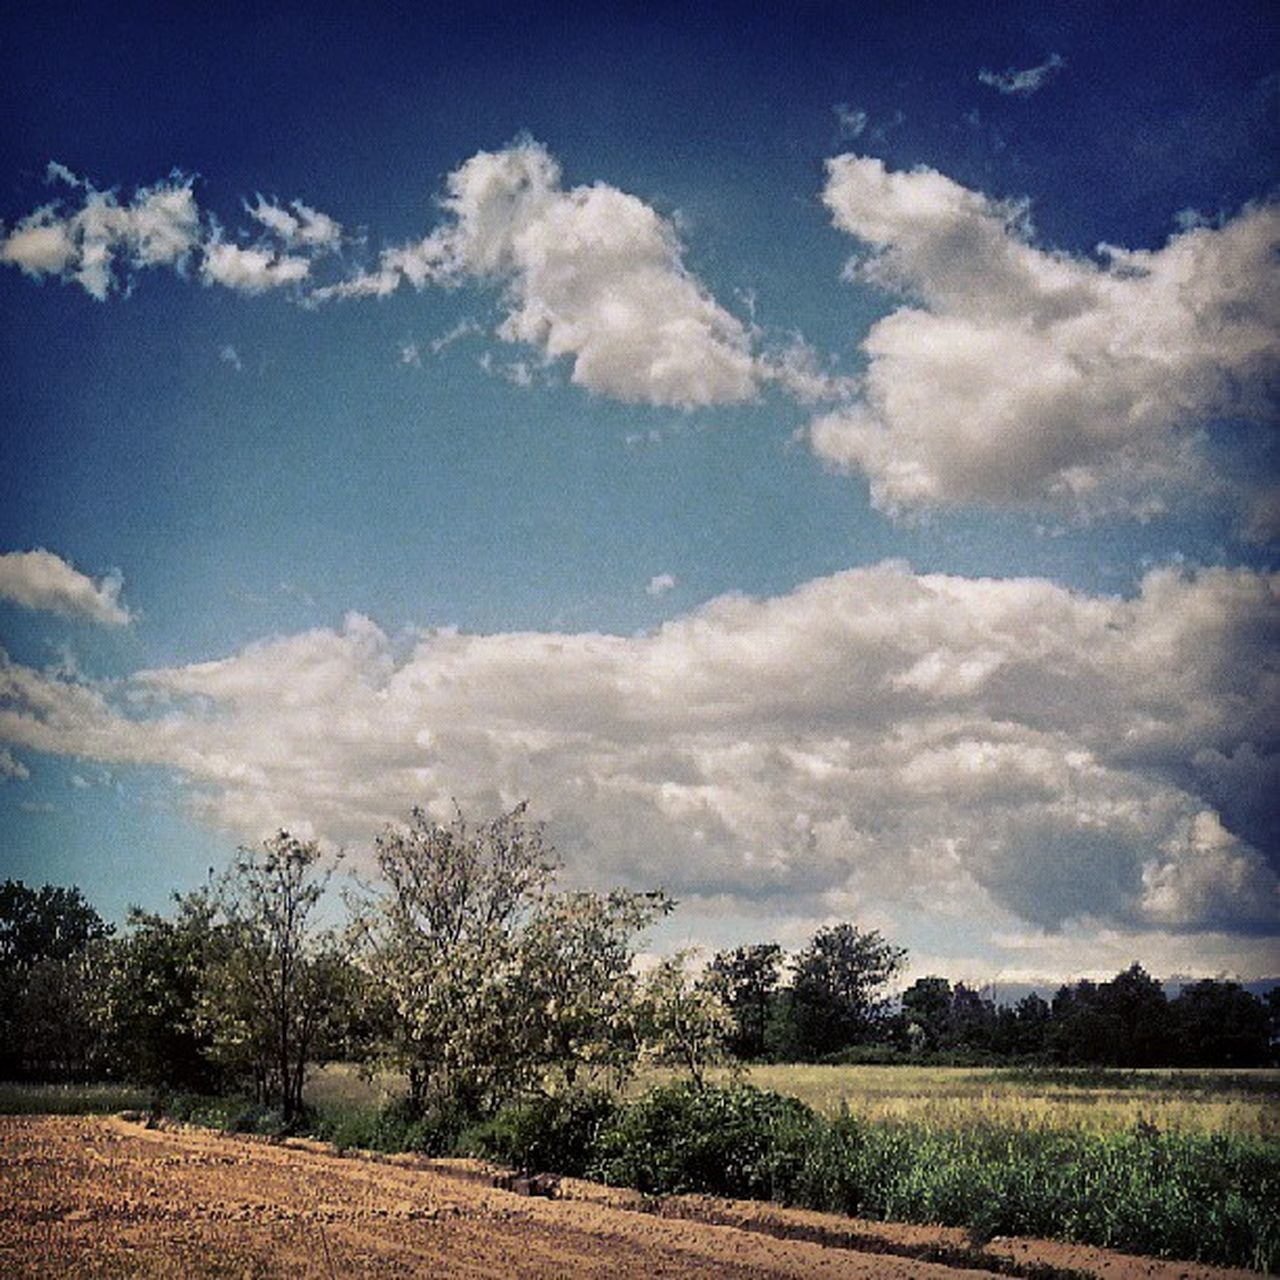 sky, cloud - sky, field, nature, scenics, landscape, beauty in nature, tranquility, tranquil scene, no people, day, tree, outdoors, agriculture, rural scene